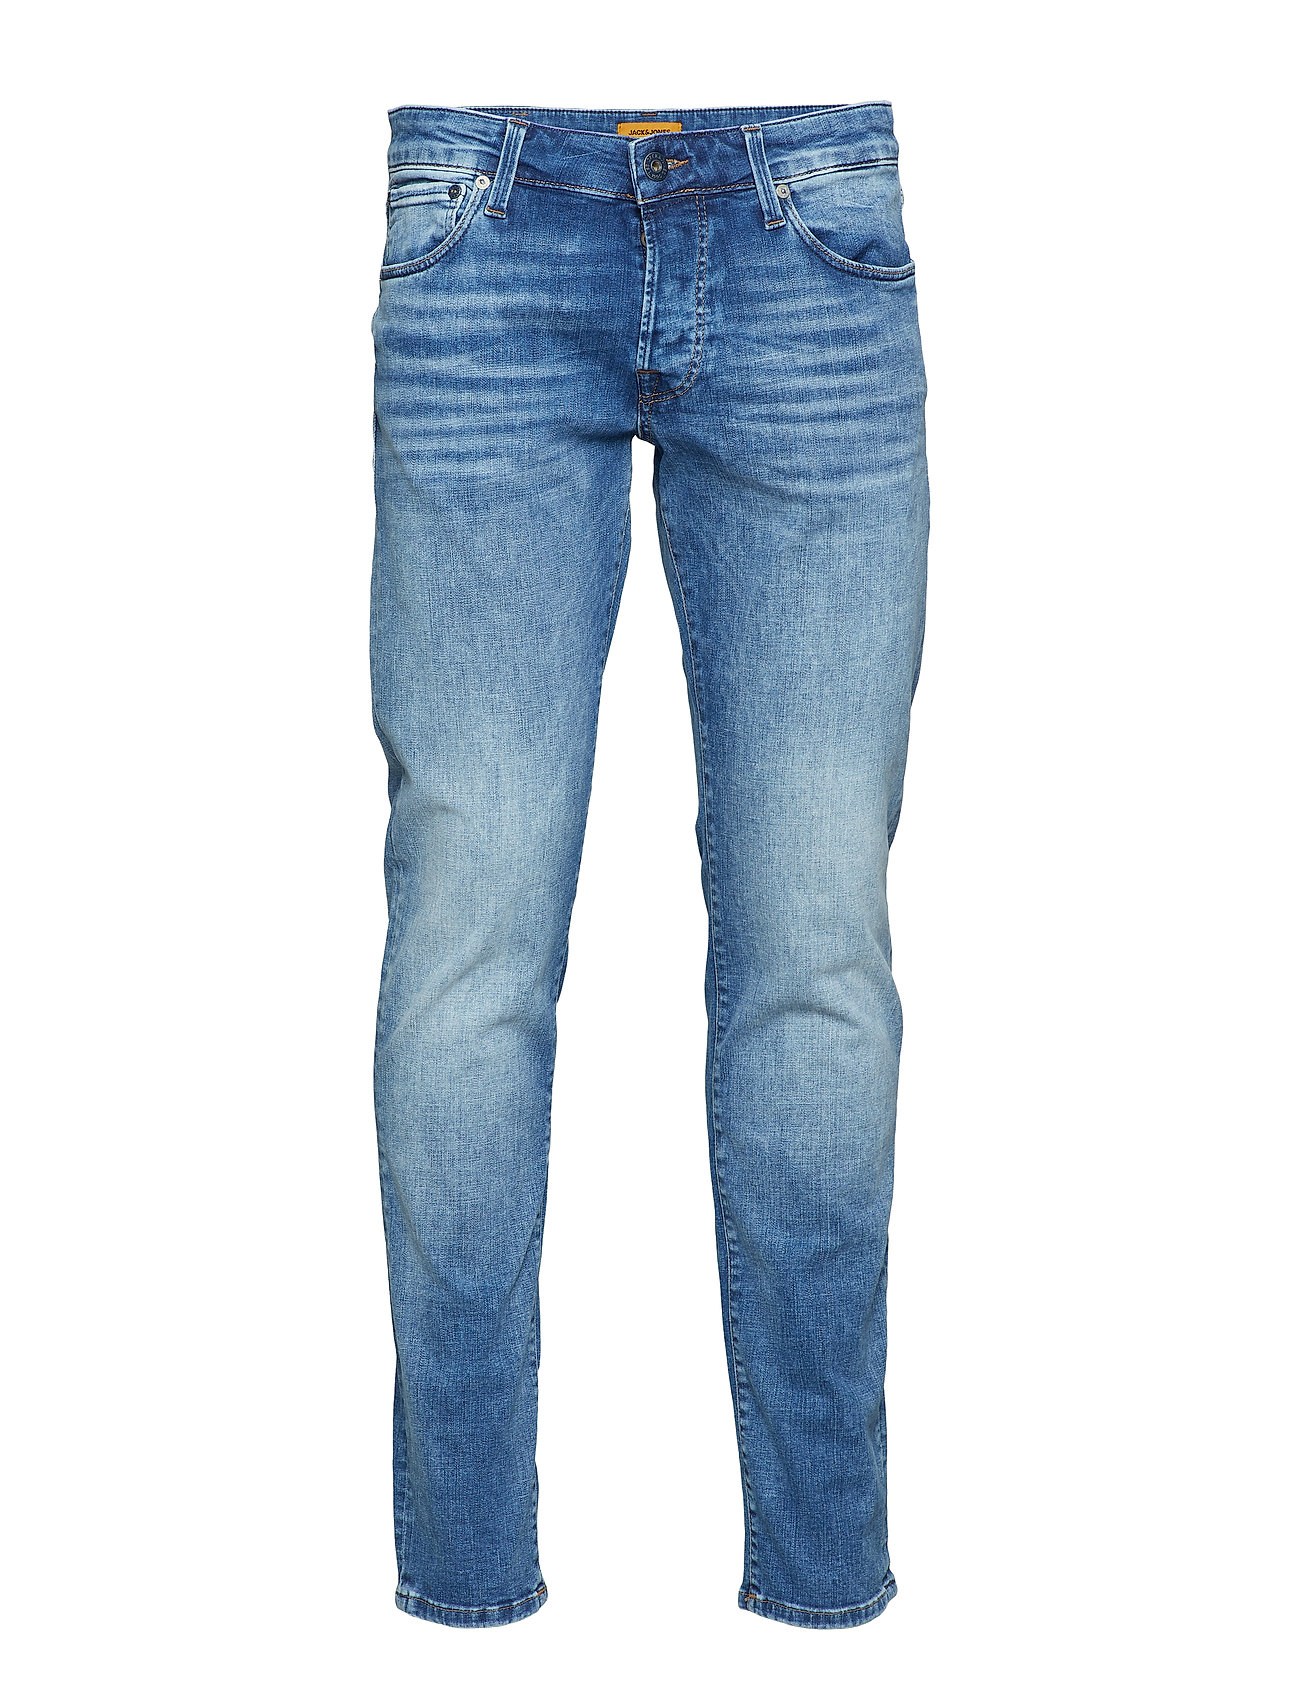 Jack & Jones JJIGLENN JJICON JJ 357 50SPS NOOS - BLUE DENIM